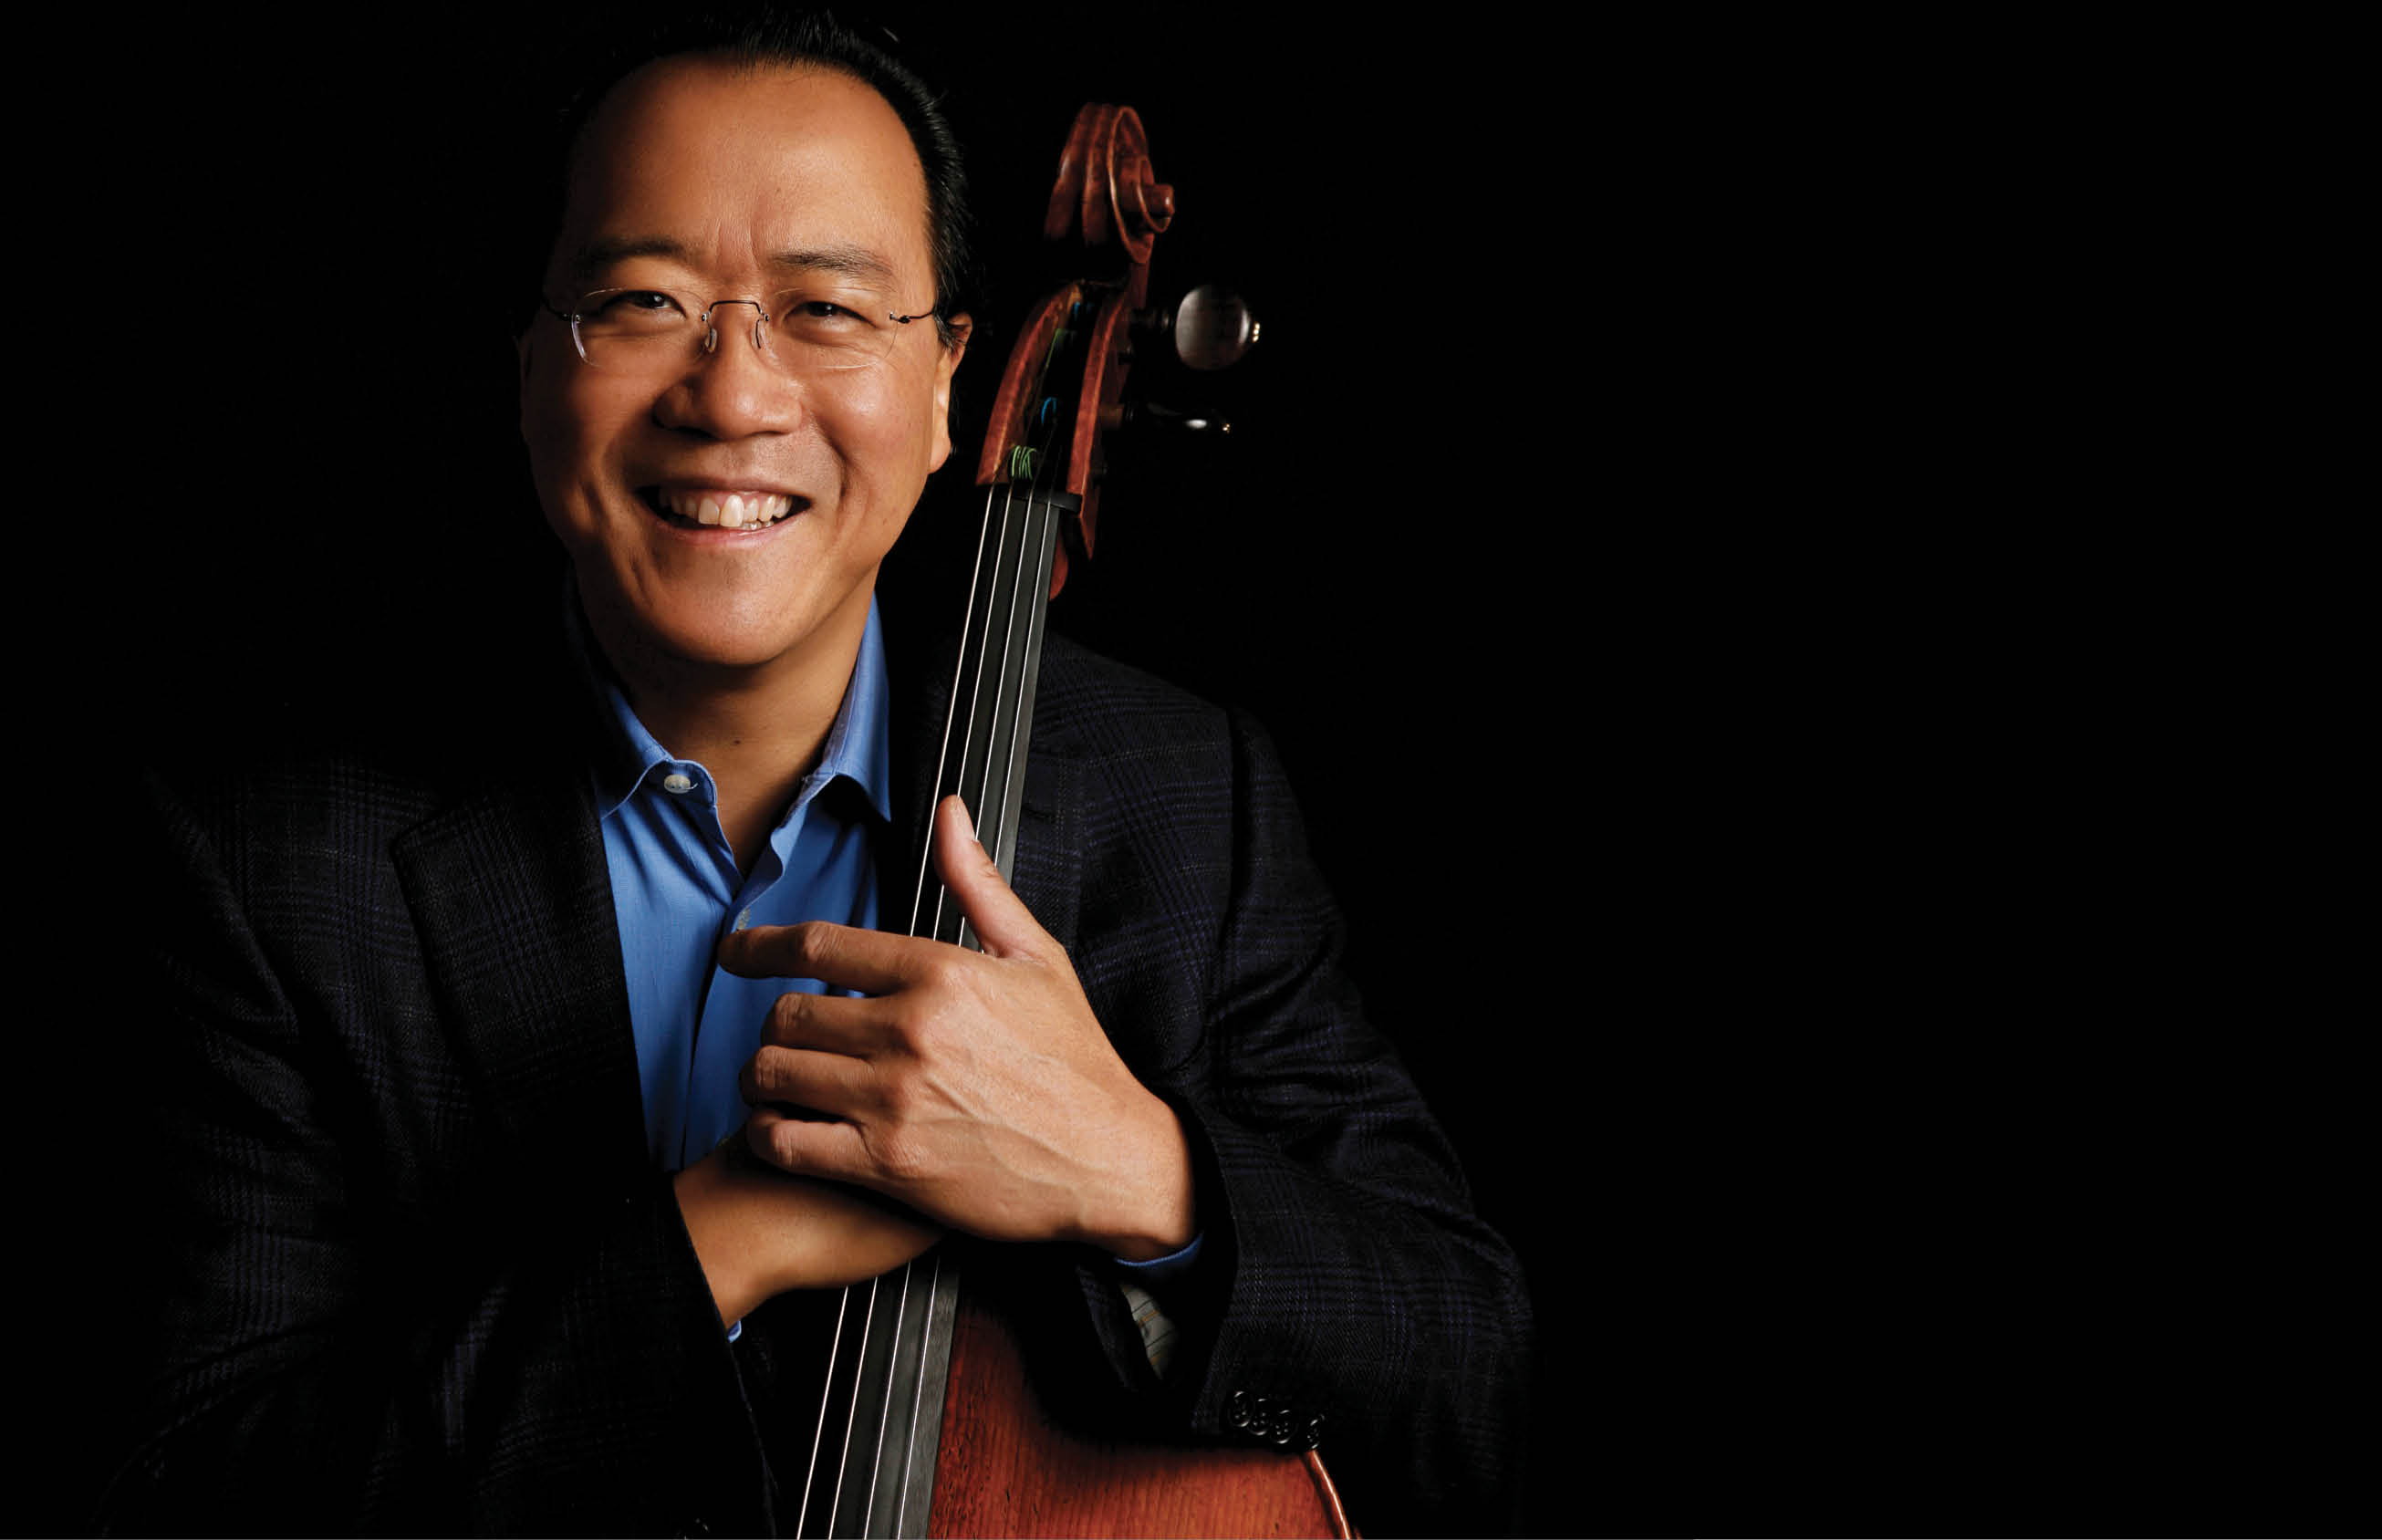 Yo-Yo Ma on Intonation, Practice, and the Role of Music in Our Lives